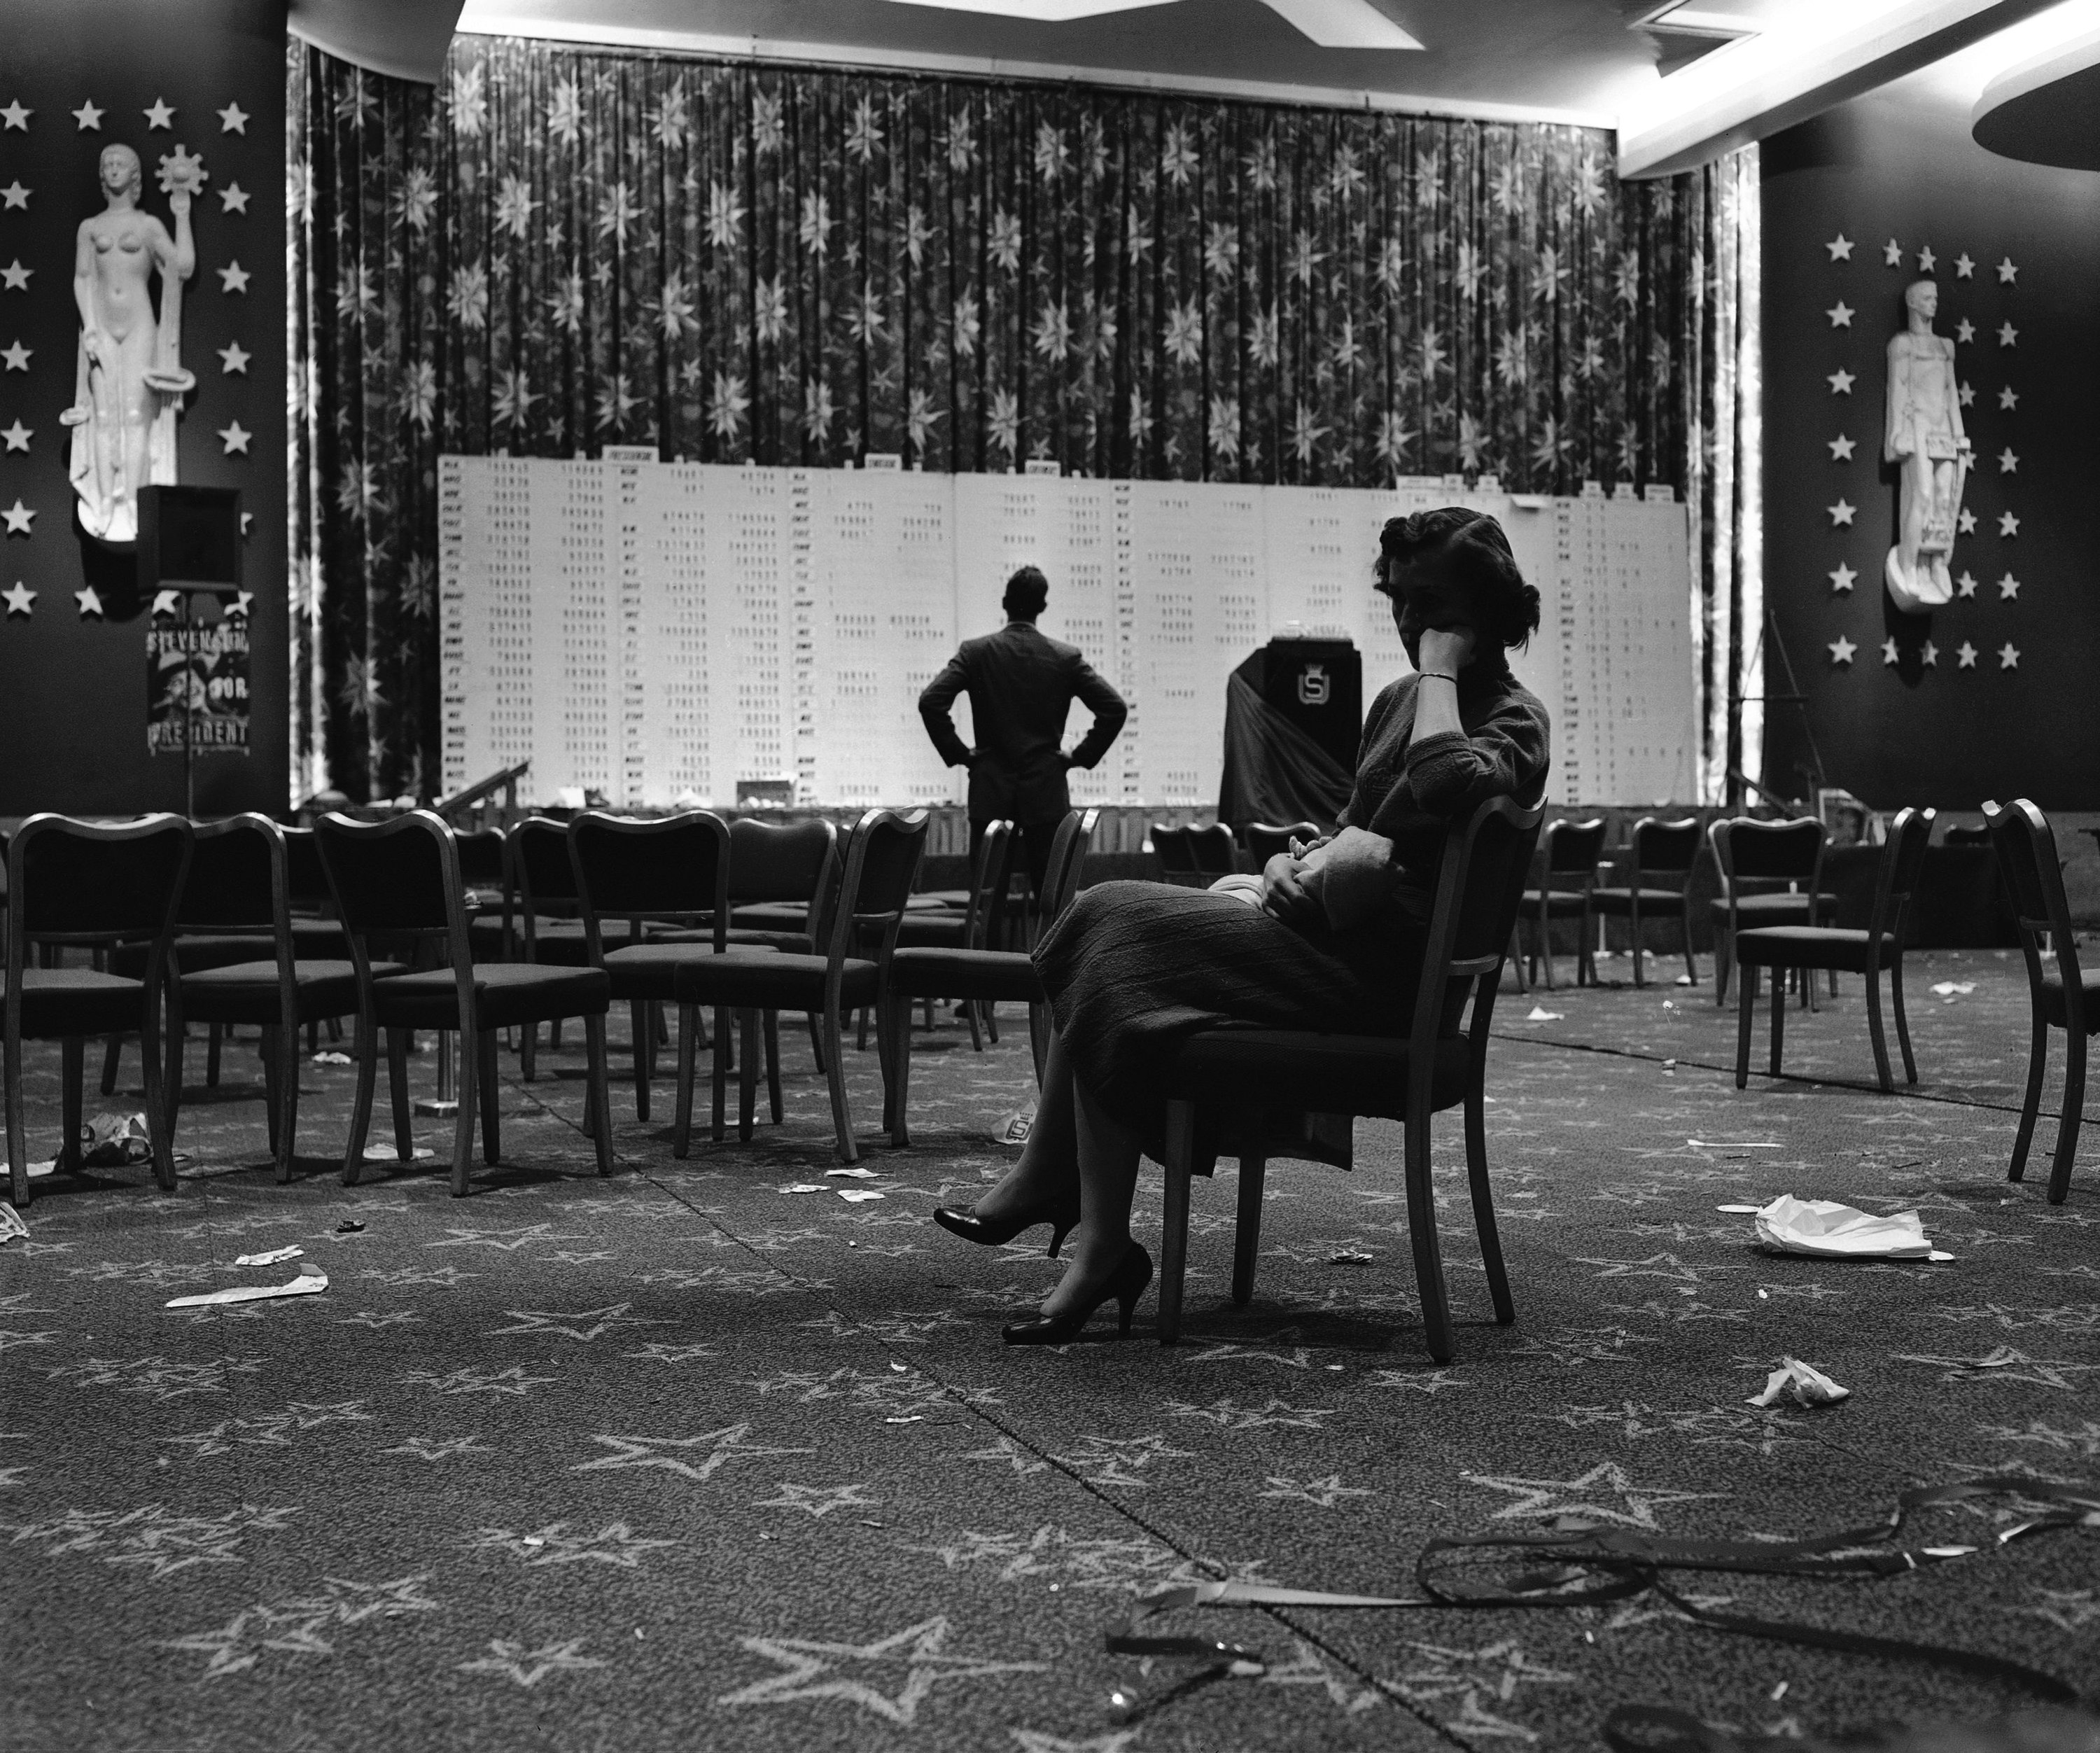 A woman in a chair looking sad in an empty hall.